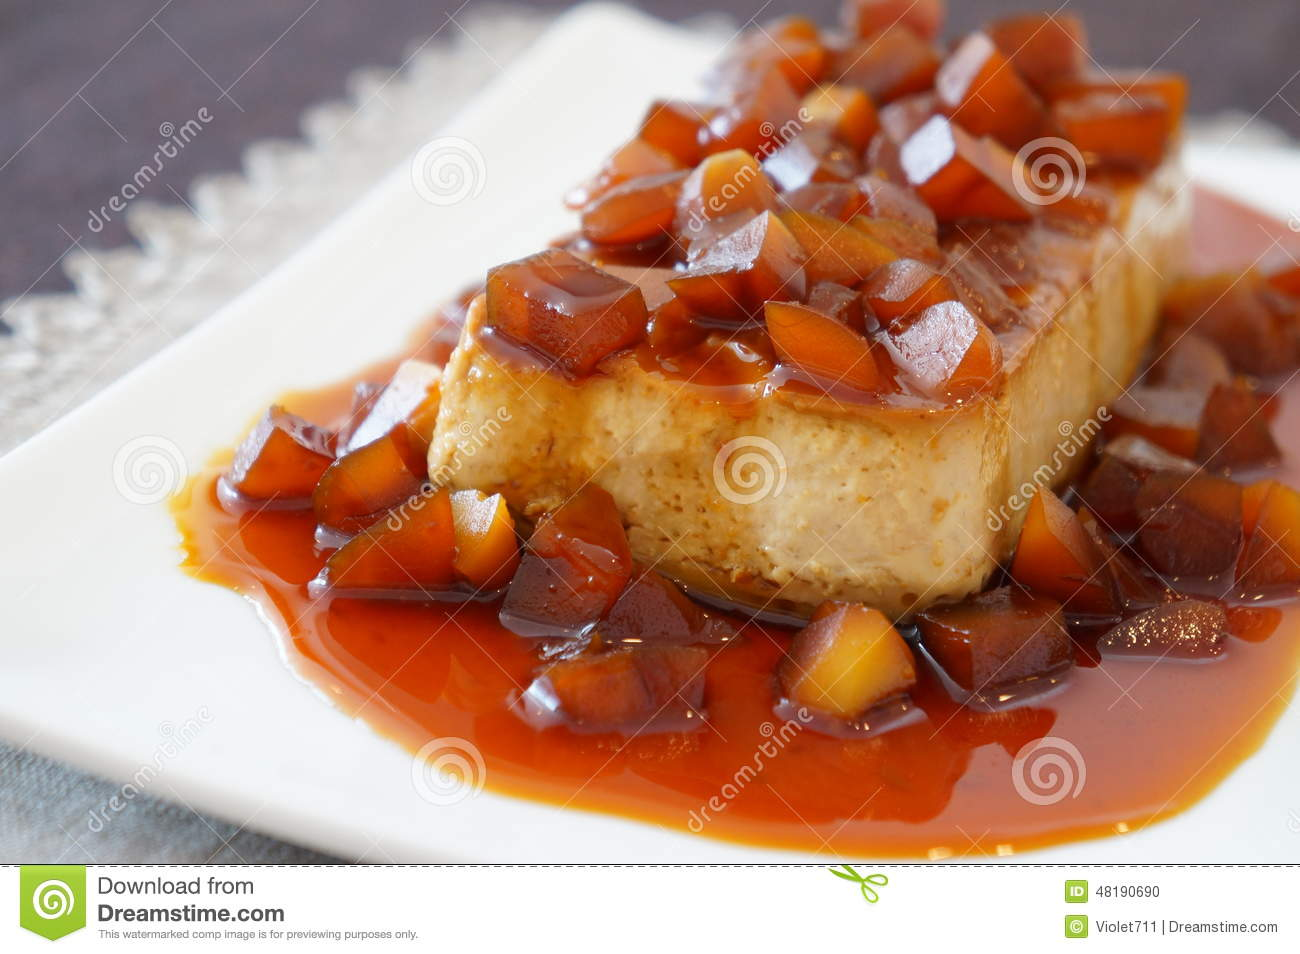 Chestnut flan with caramel sauce on a white plate.